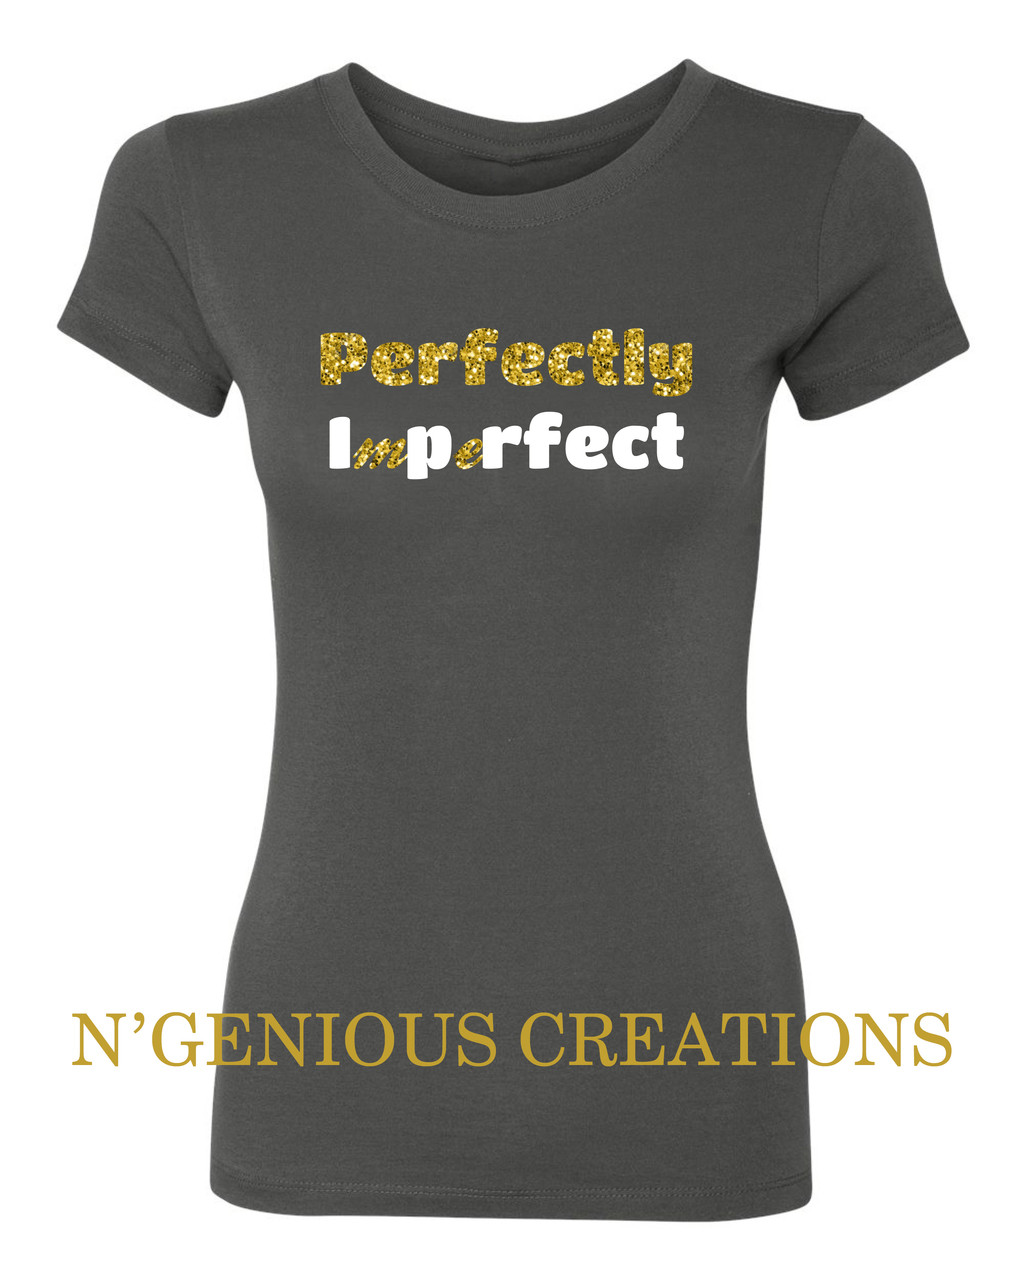 8b35d4763d66 PERFECTLY IMPERFECT WOMENS TSHIRT - N Genious Creations